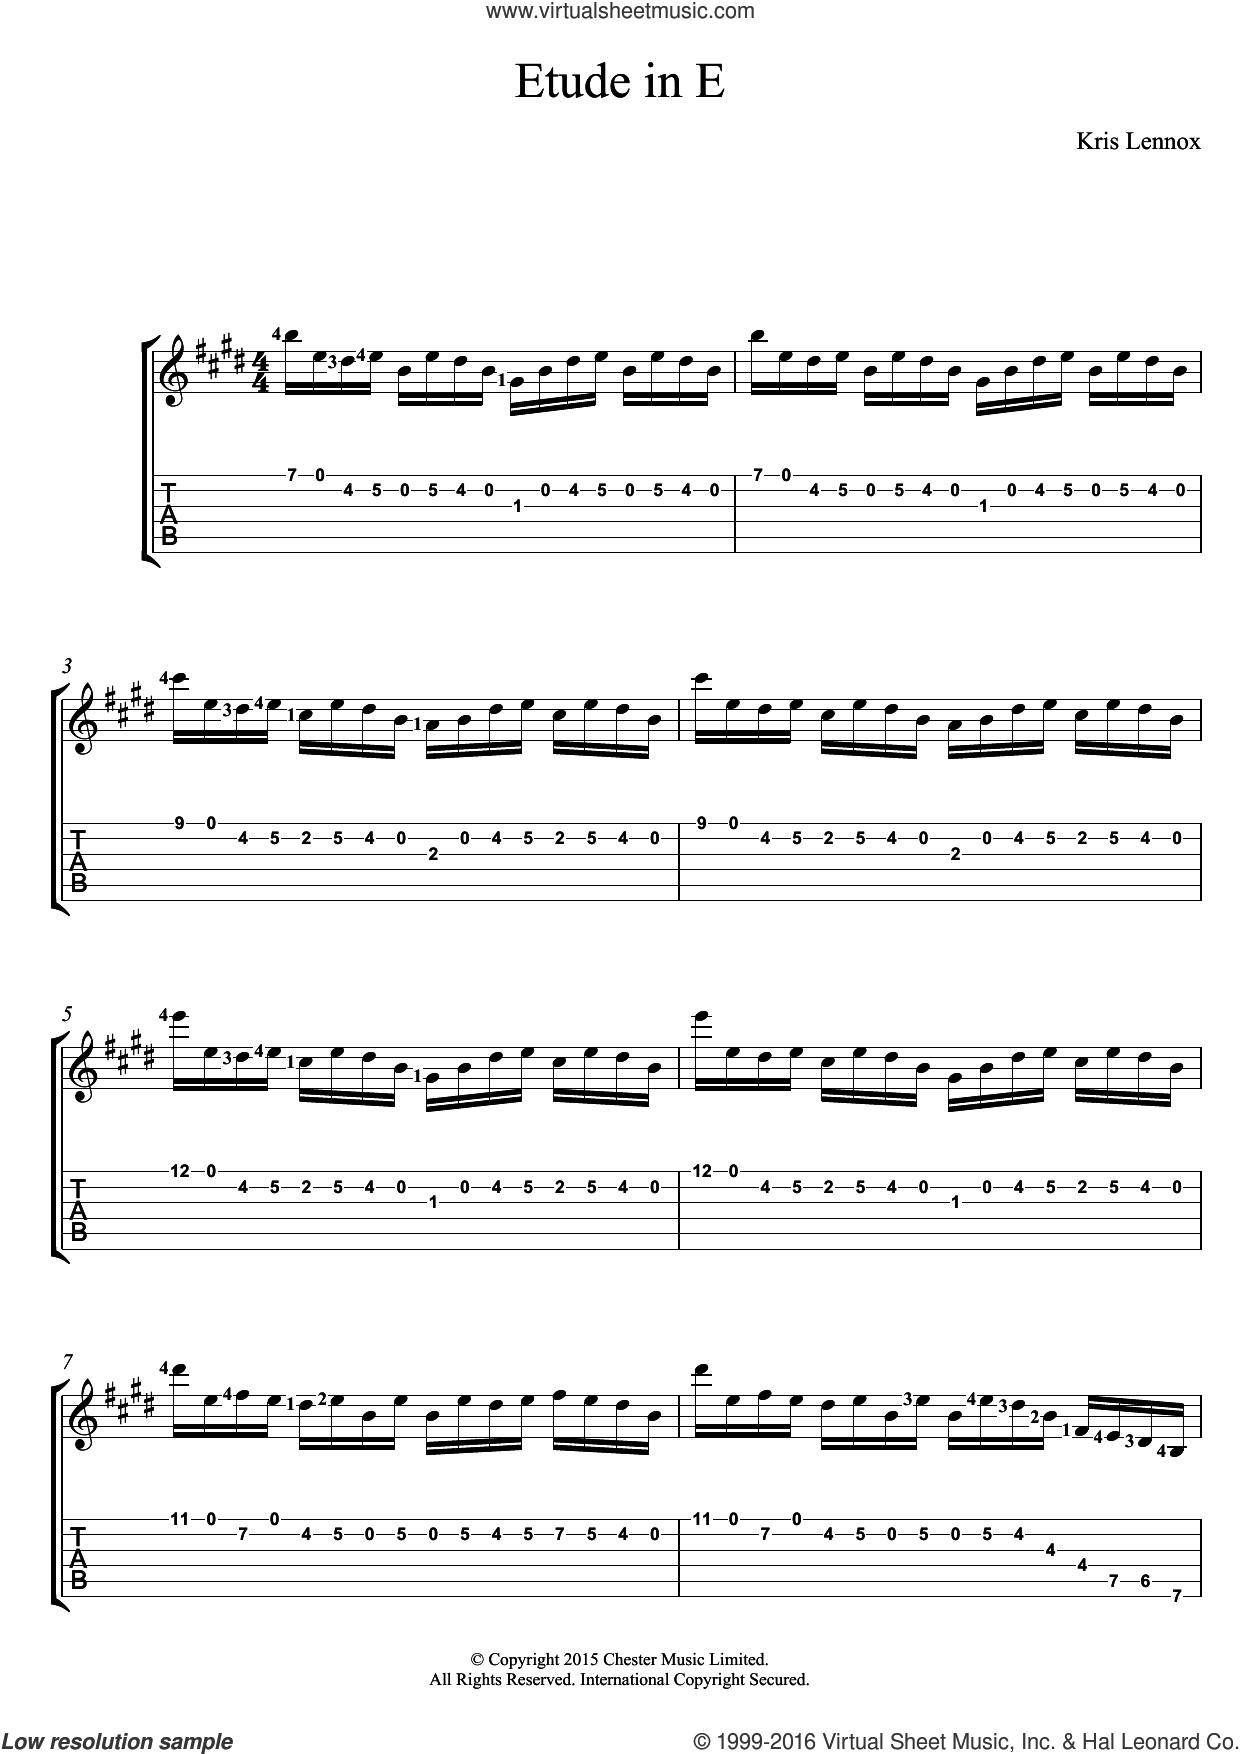 Etude In E sheet music for guitar (tablature) by Kris Lennox